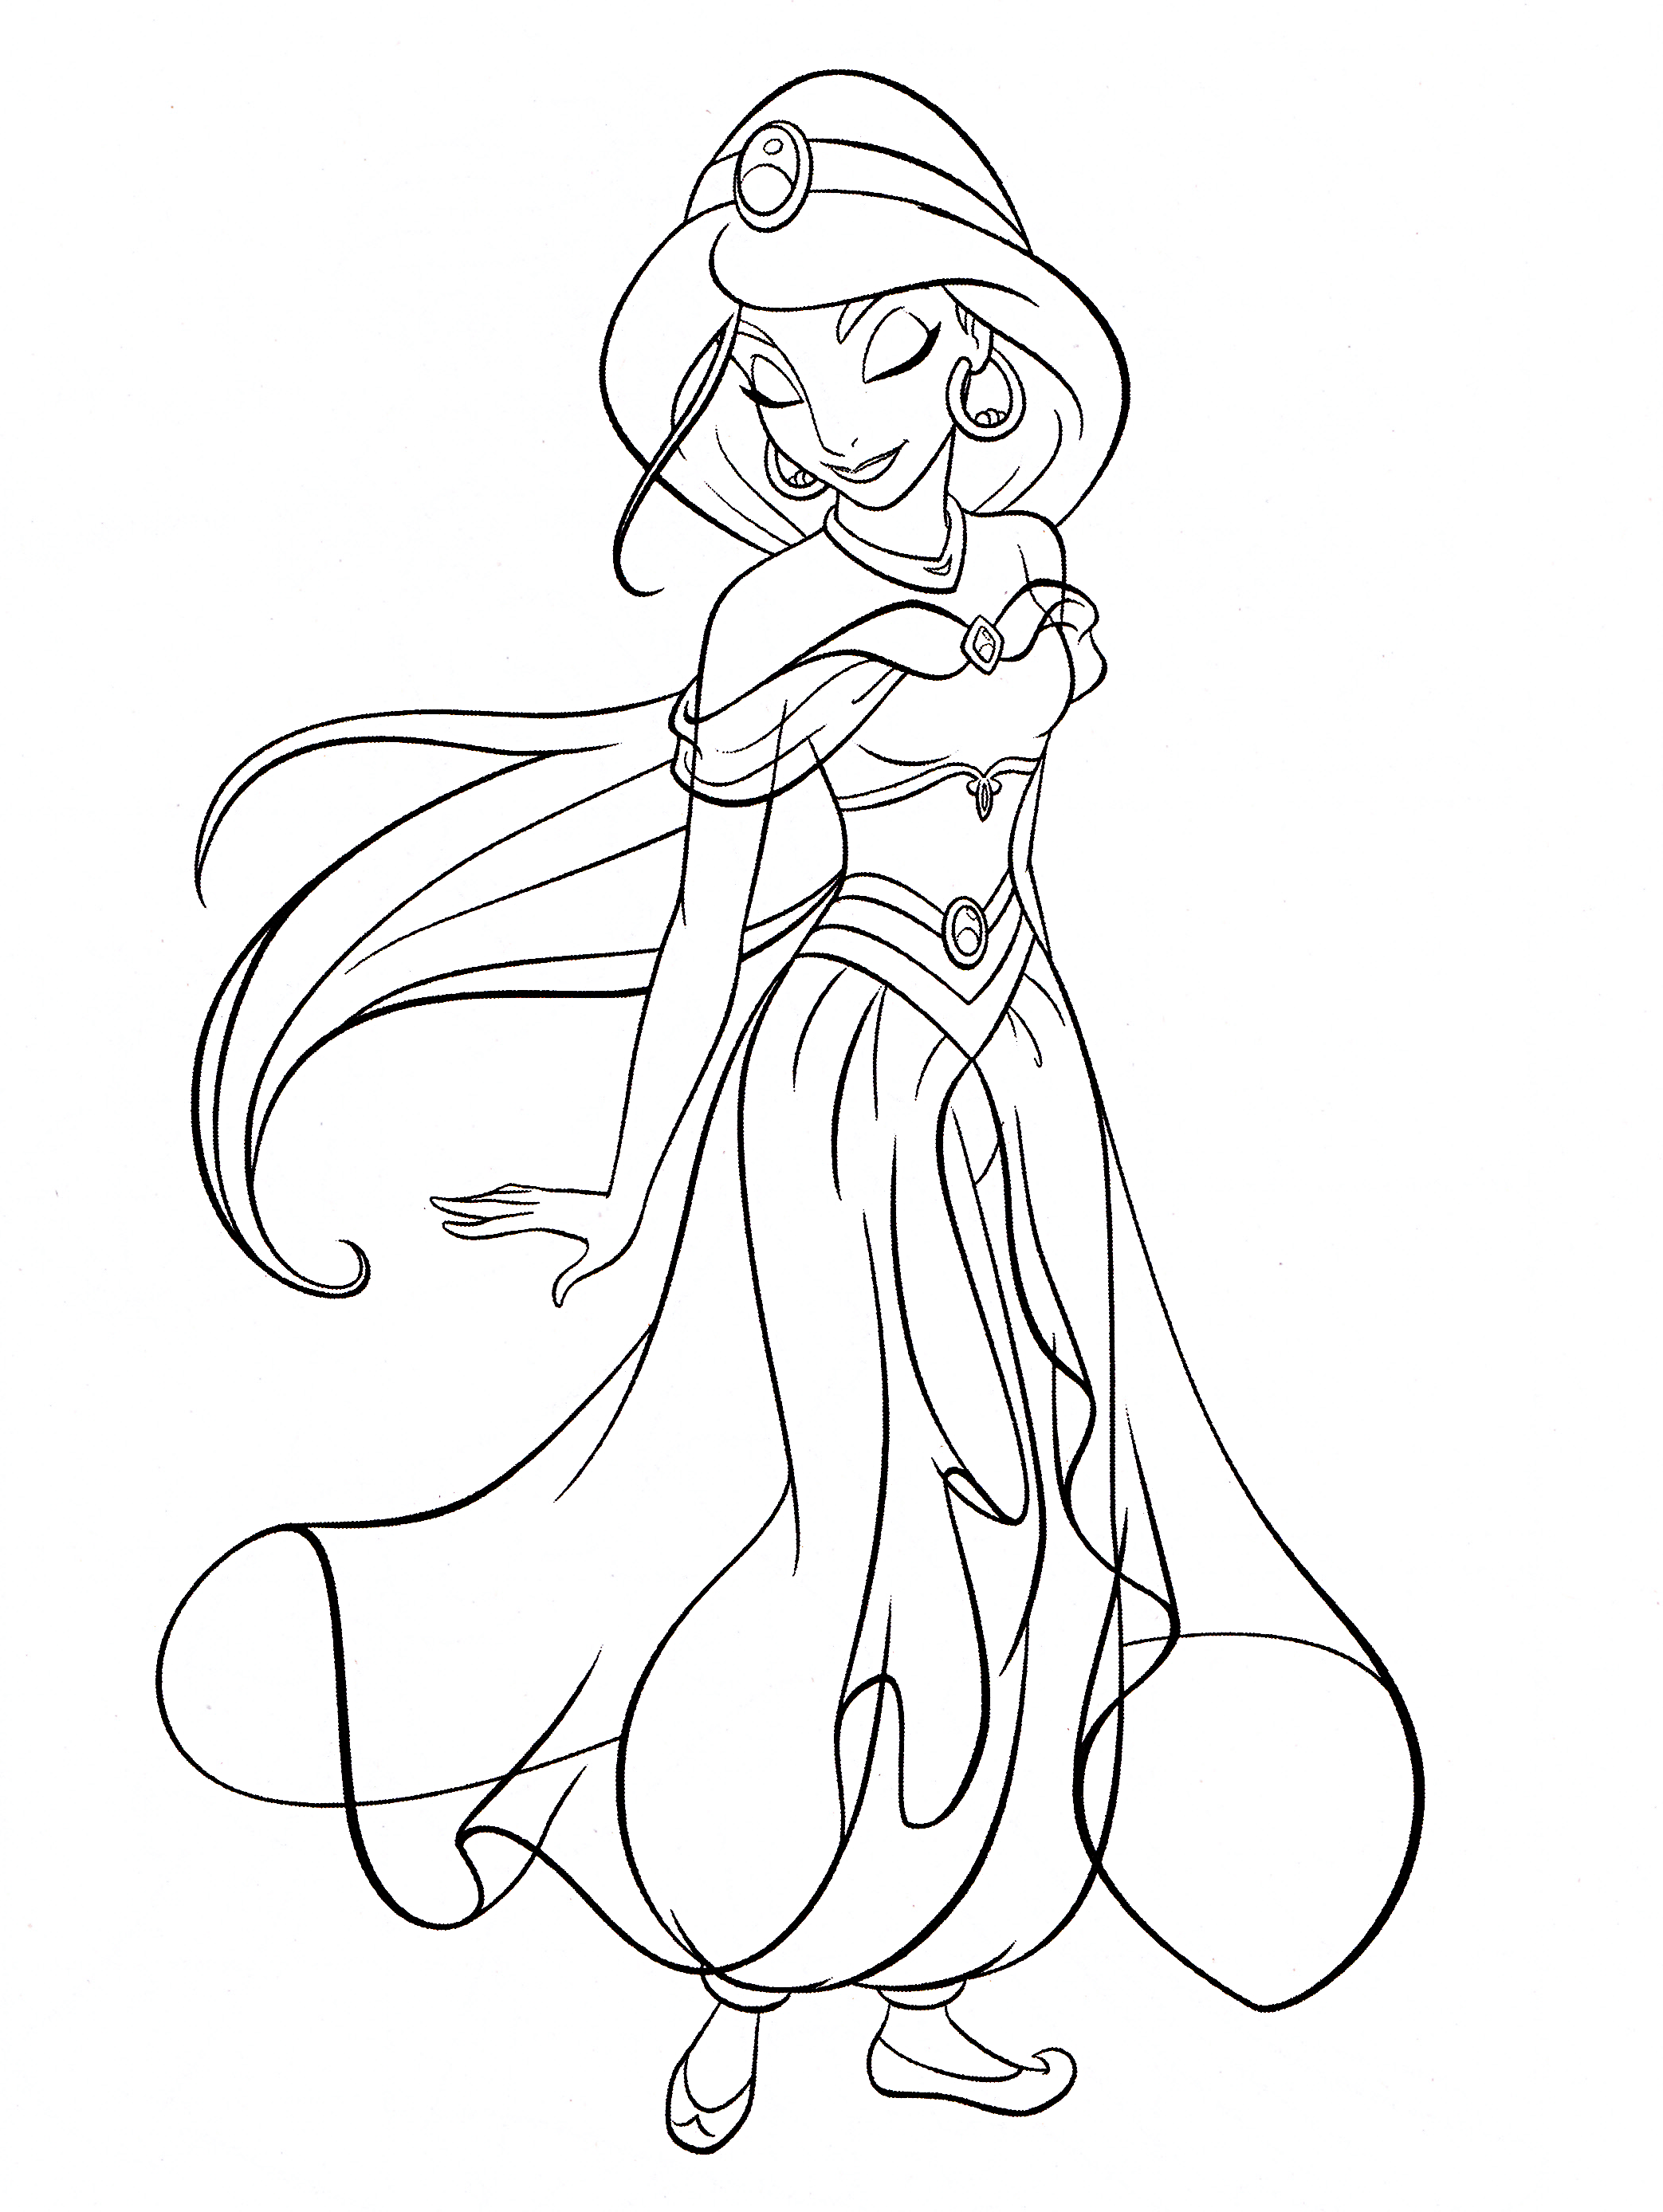 Princess jasmine coloring pages - Photo Of Walt Disney Coloring Pages Princess Jasmine For Fans Of Walt Disney Characters